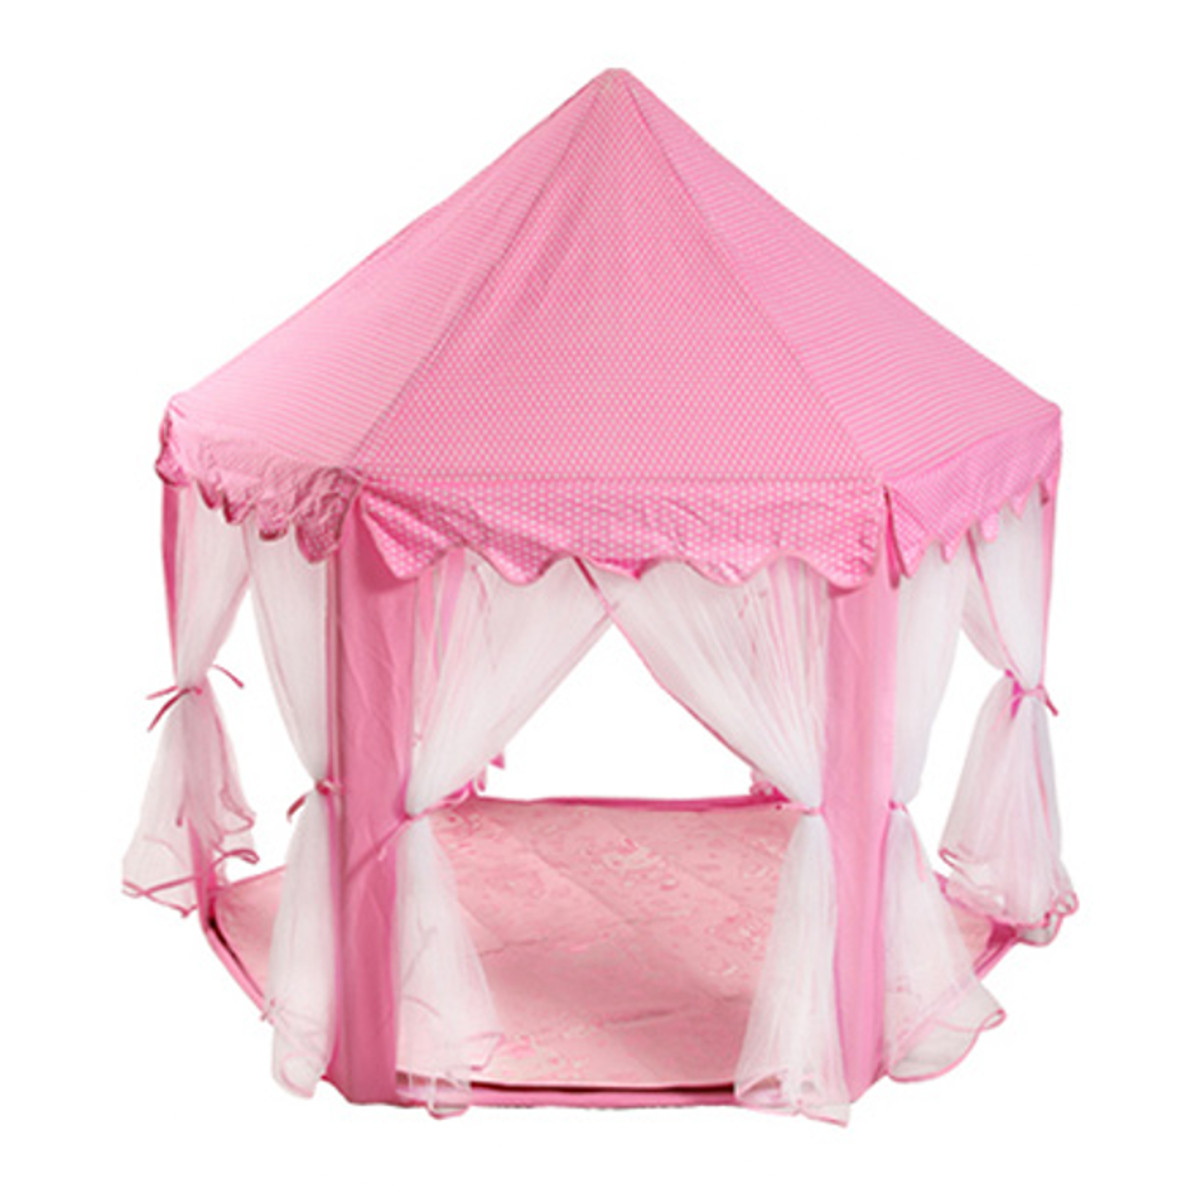 tente de jeu ch teau tipi camping princesse fille rose achat vente tente tunnel d 39 activit. Black Bedroom Furniture Sets. Home Design Ideas